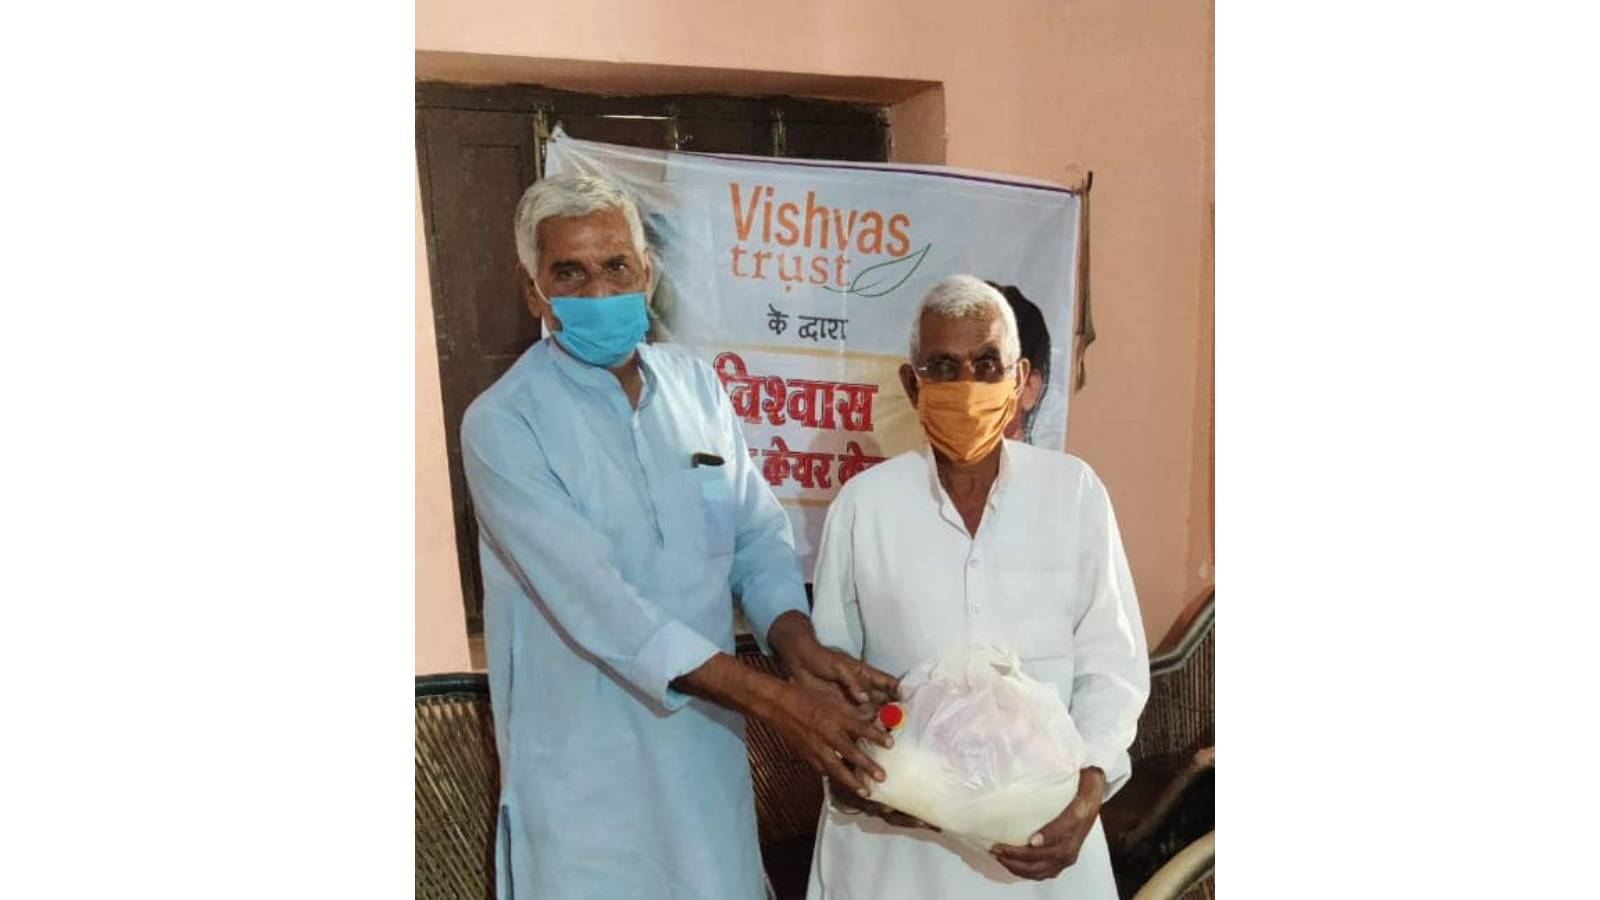 Distributed Ration kits in Rural Areas through  Dr. Kumar Vishwas